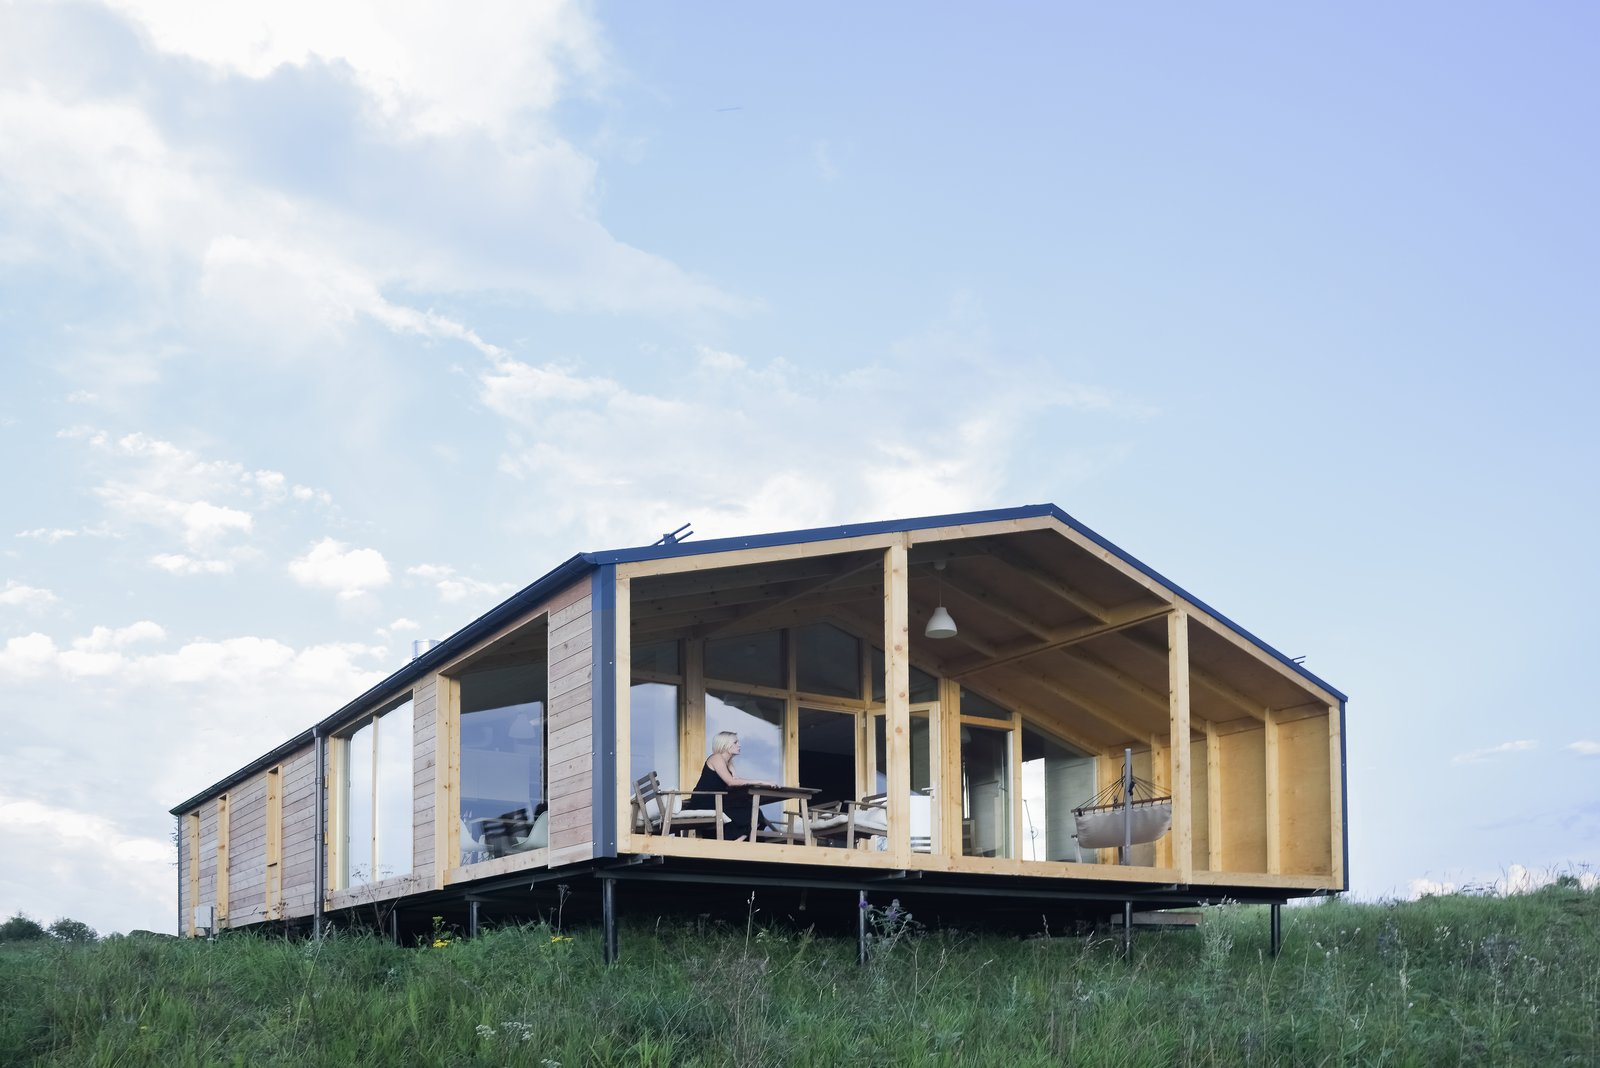 DublDom Prefab Homes Can Be Built in One Day - Dwell